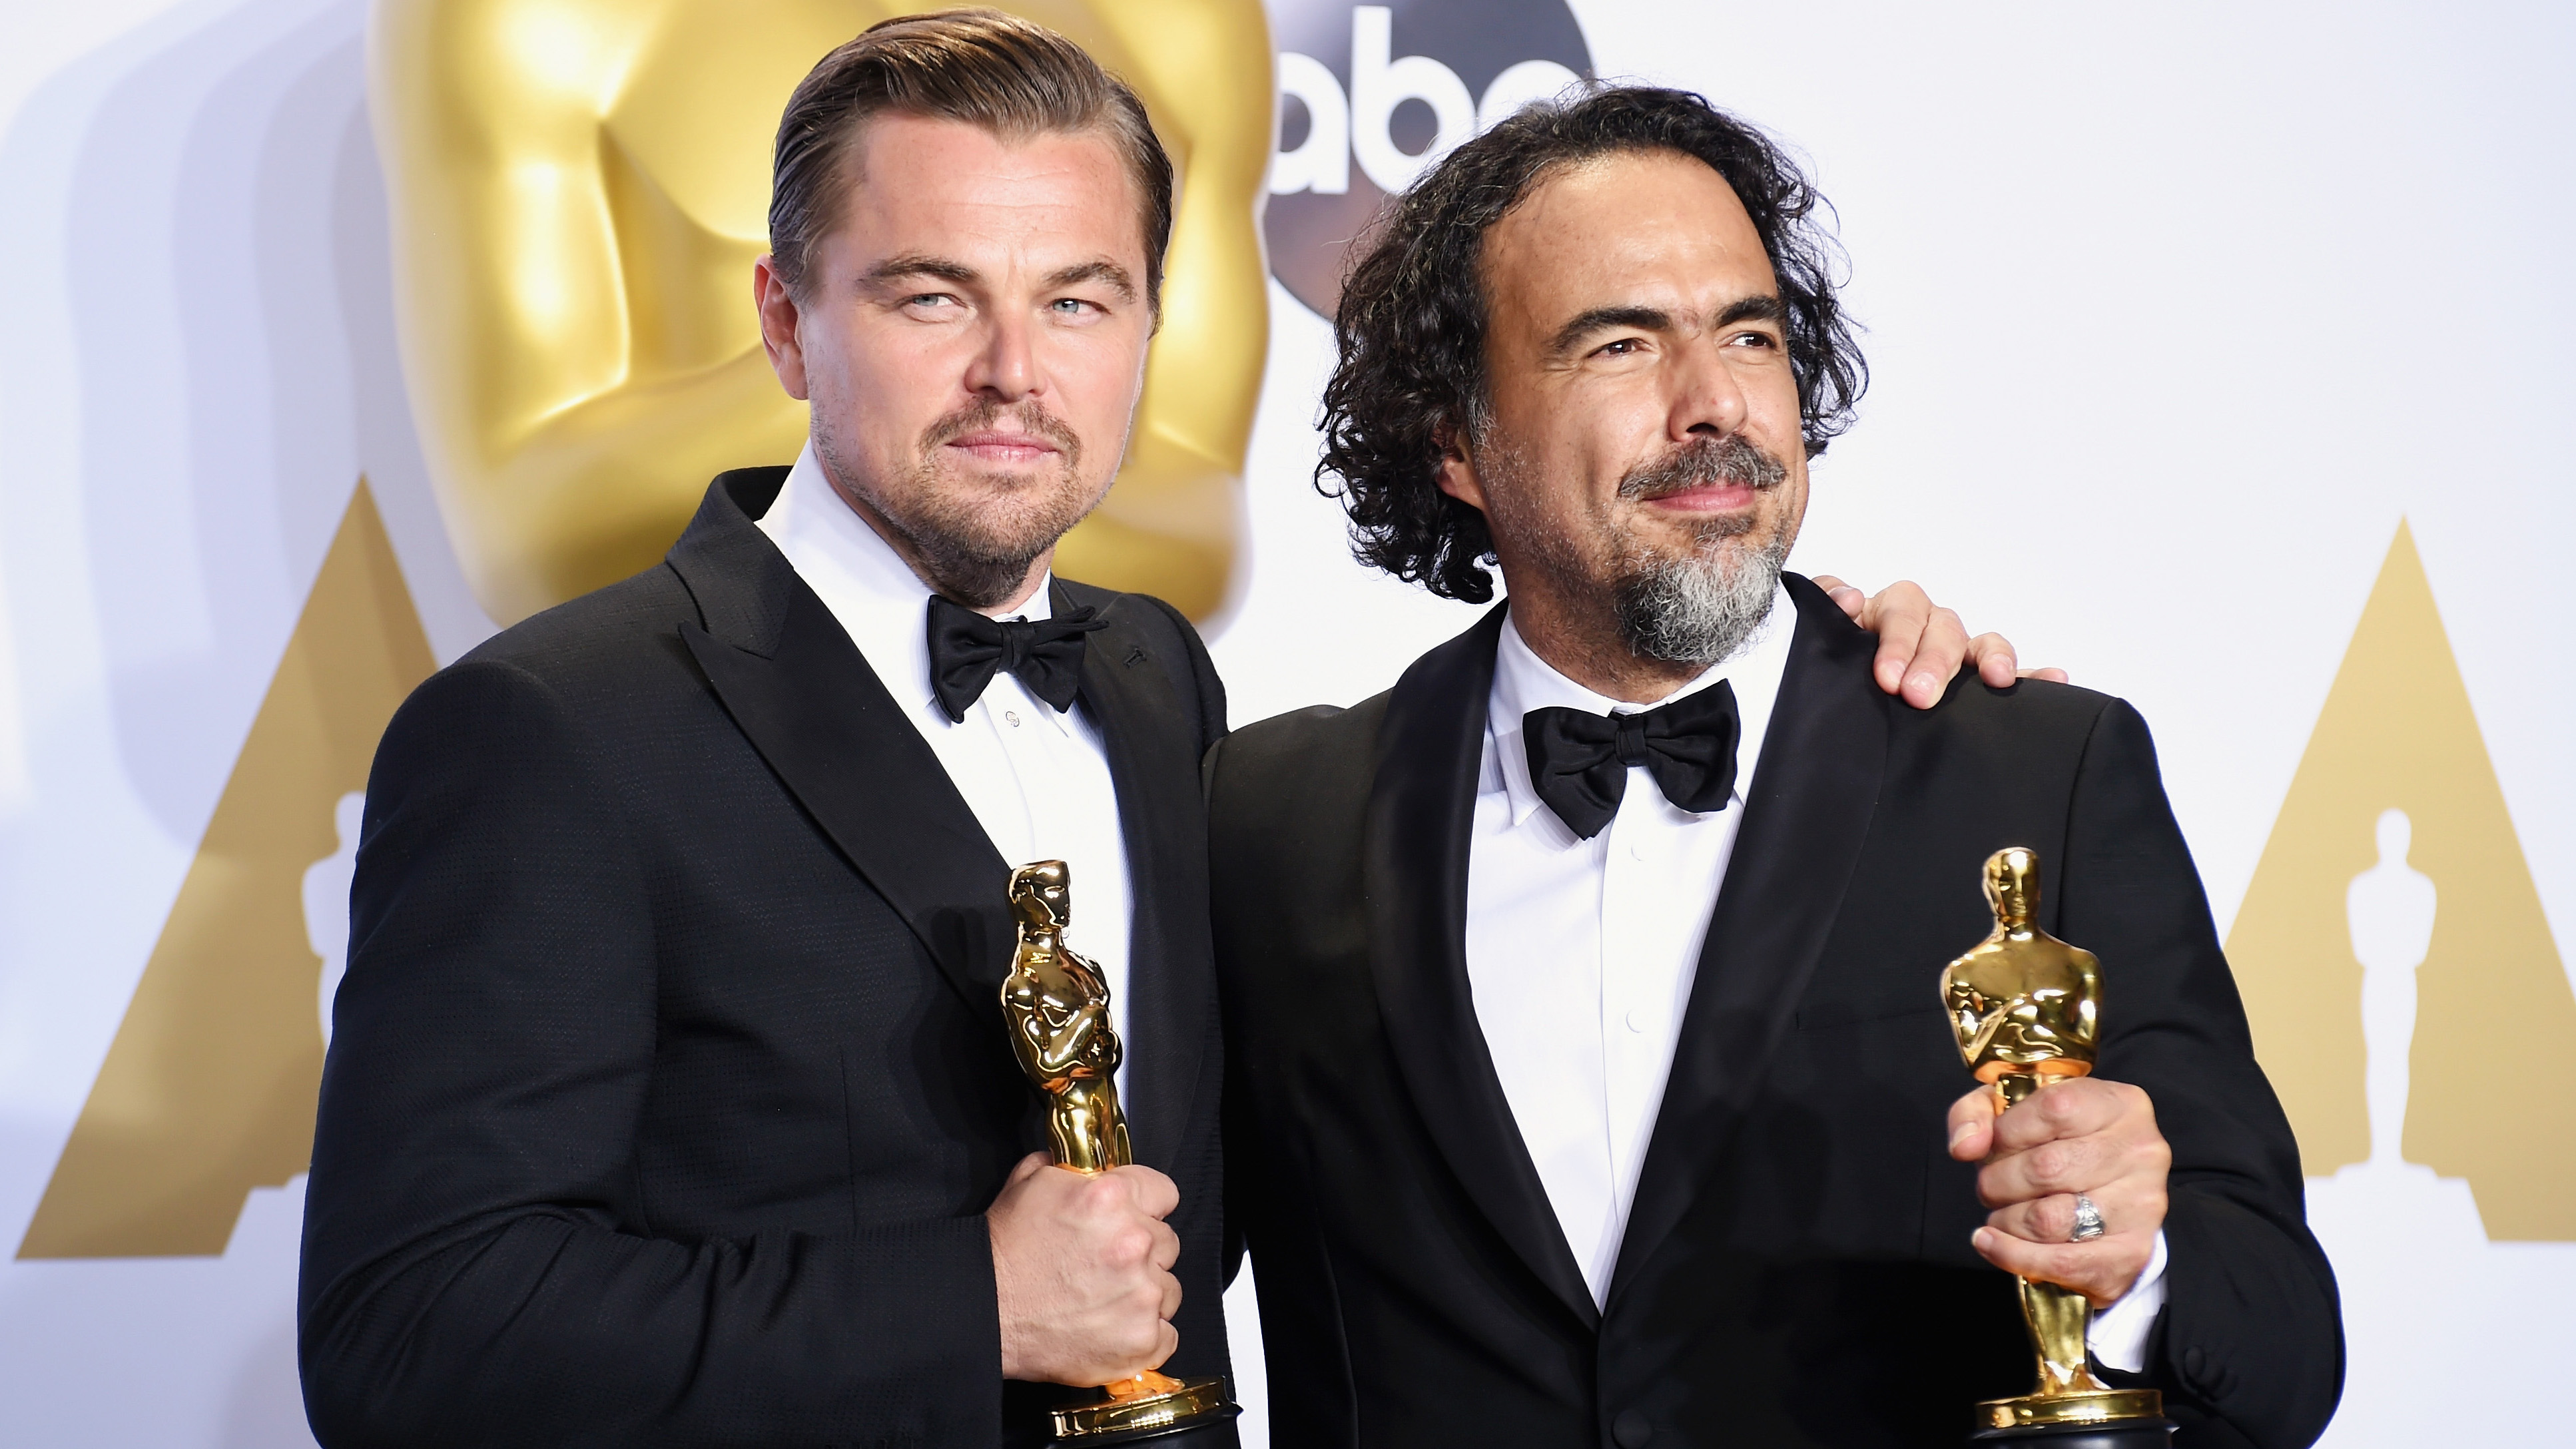 'The Revenant' won big at the Oscars, with Leonardo DiCaprio claiming best actor and Alejandro Gonzalez Inarritu winning best director on Feb. 28, 2016. FILMMAGIC/Jeff Kravitz.